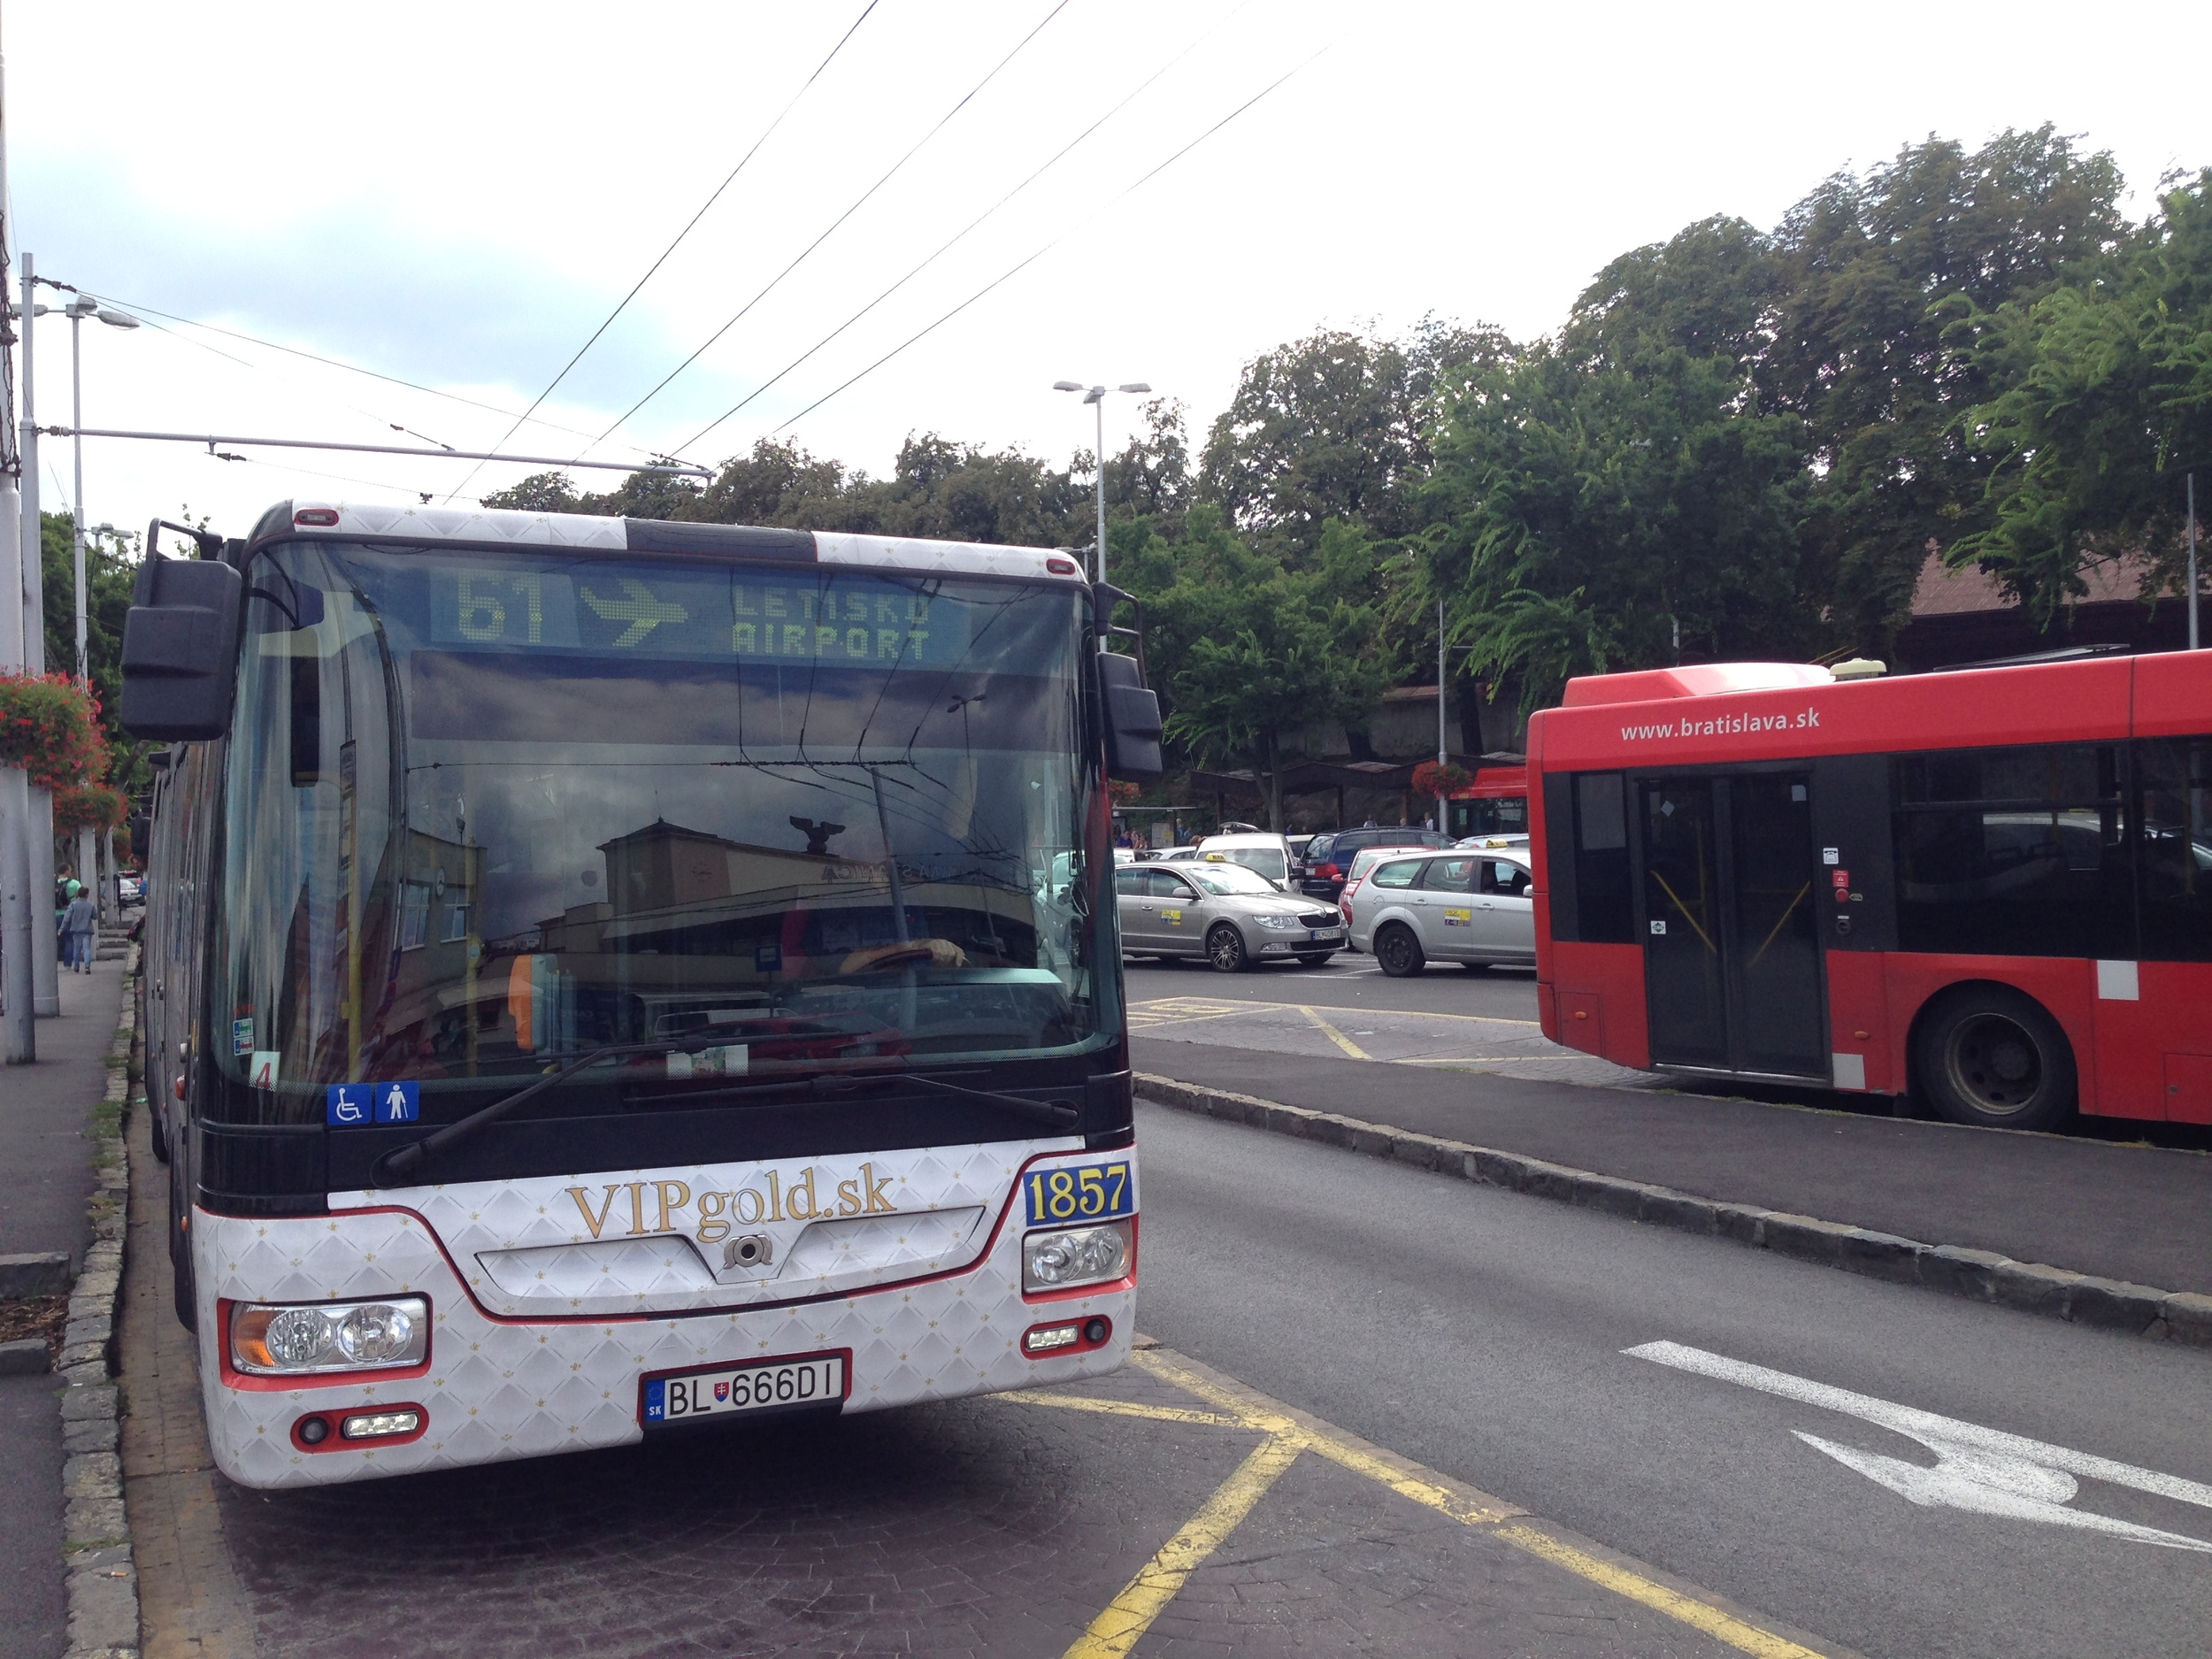 The line 61 bus connecting Bratislava Airport to the city centre. It's a bargain, too, at just €0.90 per person.